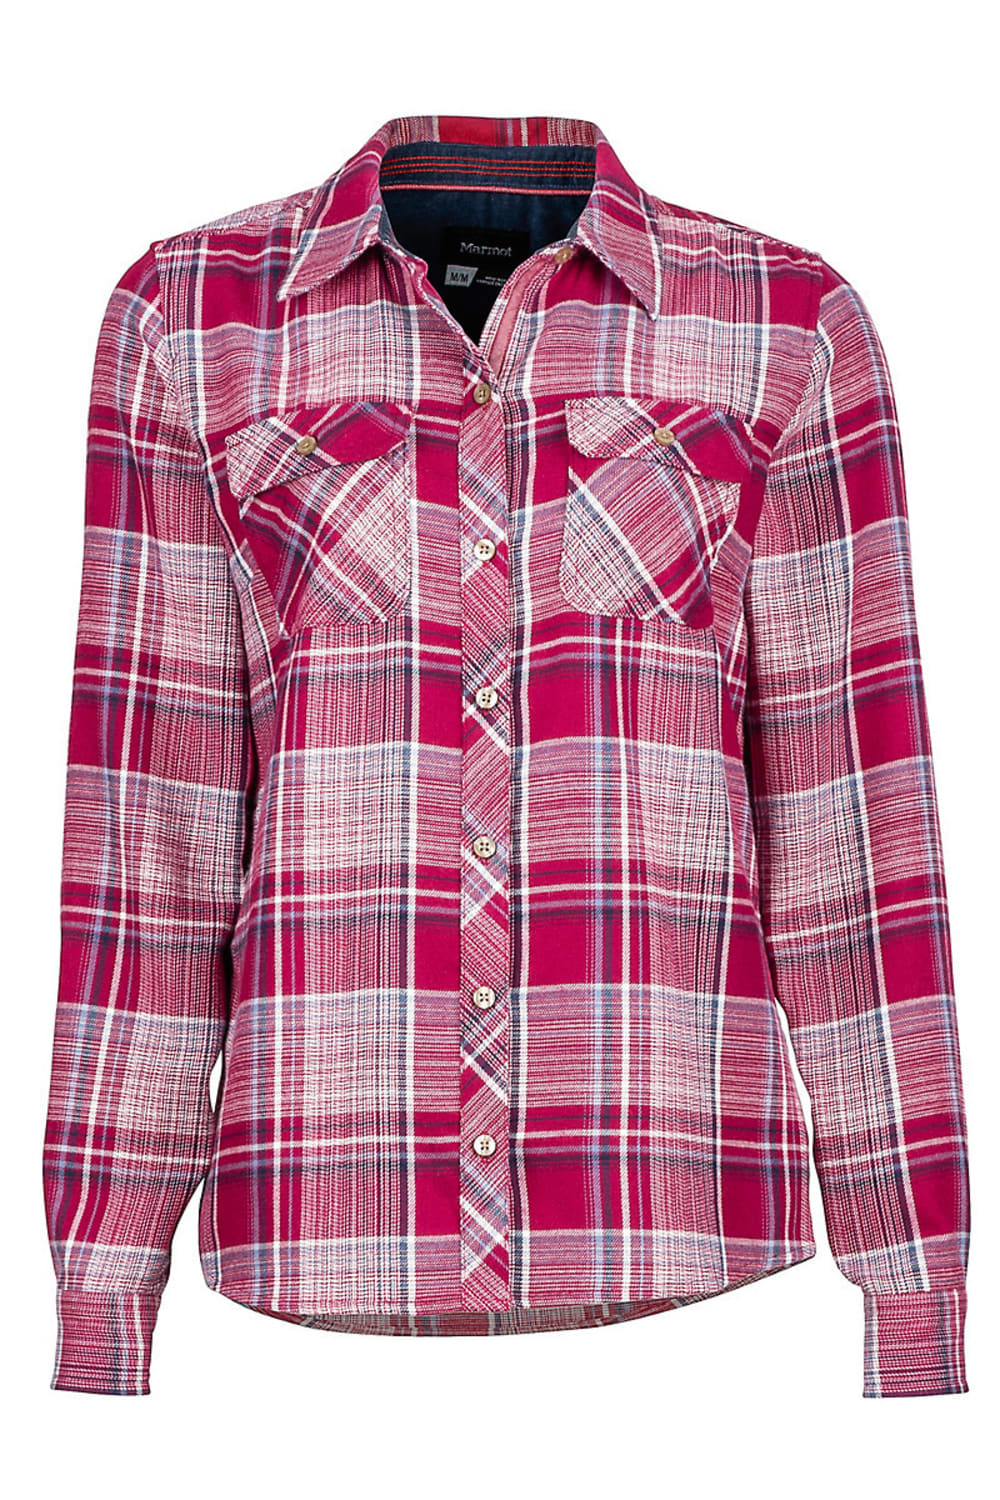 MARMOT Women's Bridget Flannel Shirt - 6817-RED DAHLIA